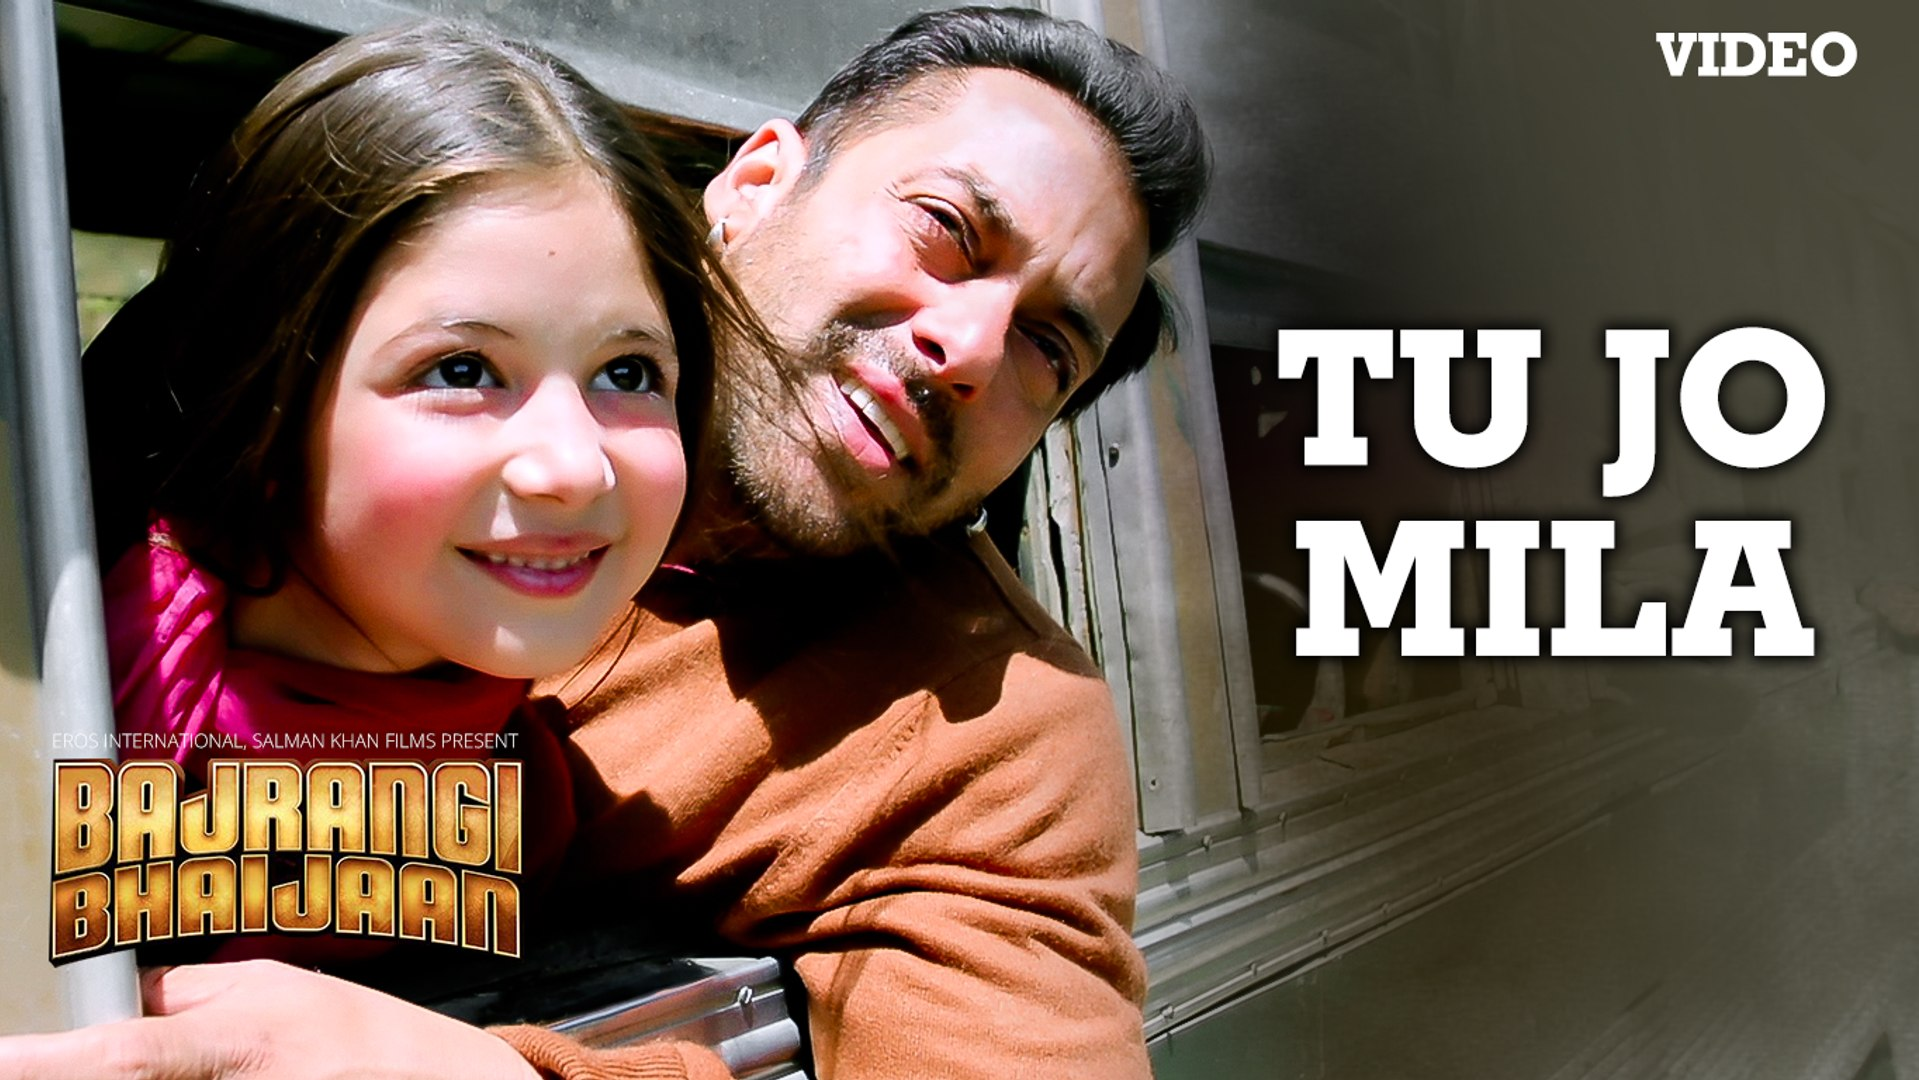 Tu Jo Mila Full Video Song Singer K K Starring Salman Khan Nawazuddin Harshaali Film Bajrangi Bhaijaan Full Hd Entertainment City Video Dailymotion